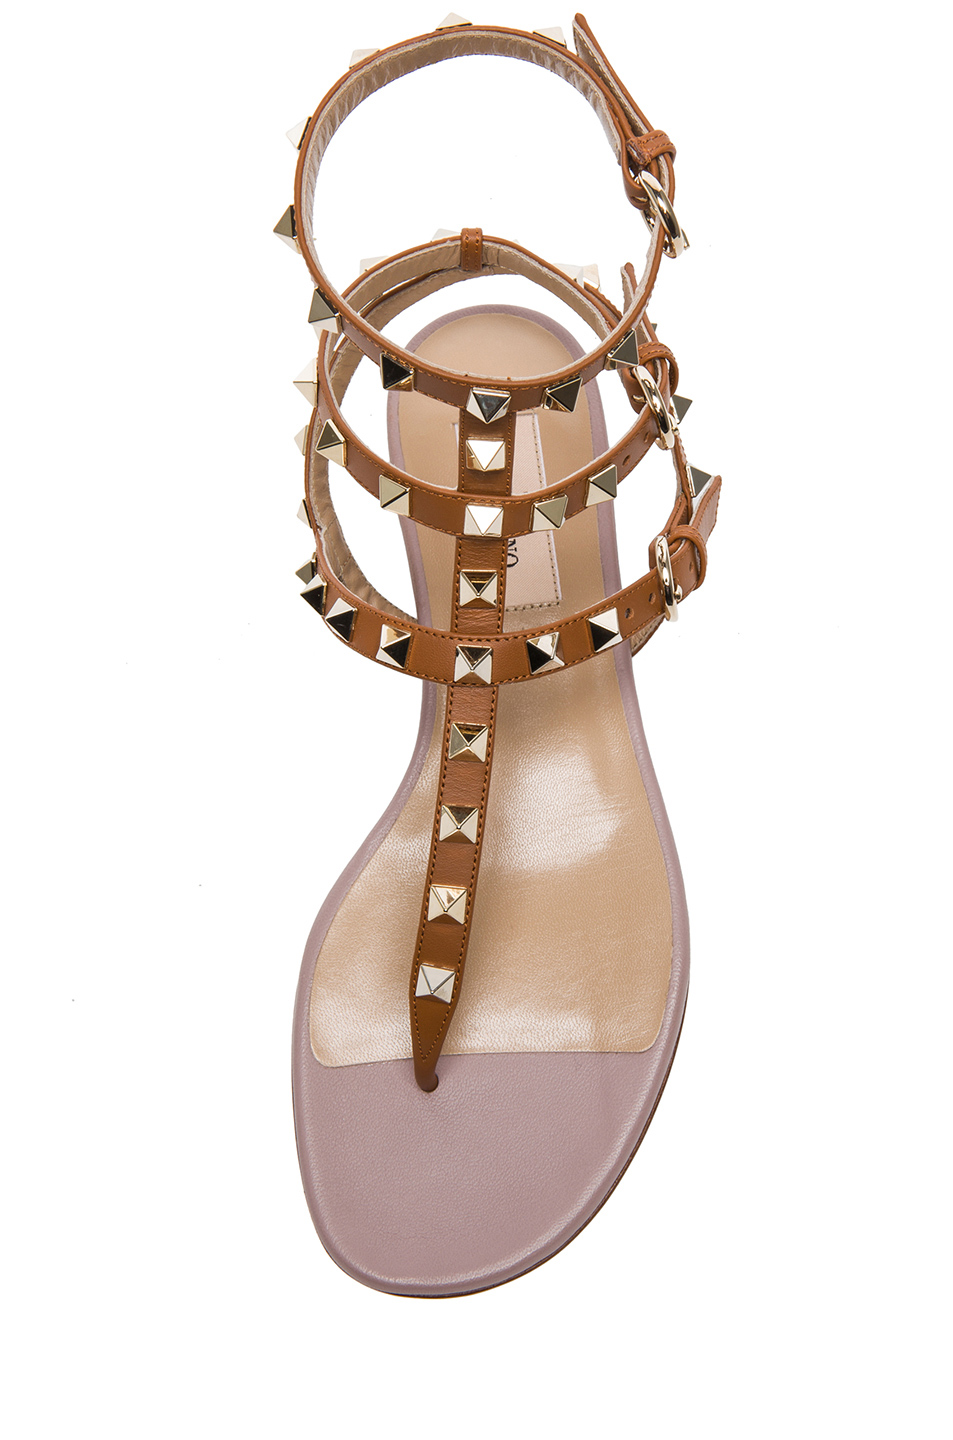 Valentino | Rockstud Leather Sandals T.05 in Light Cuir